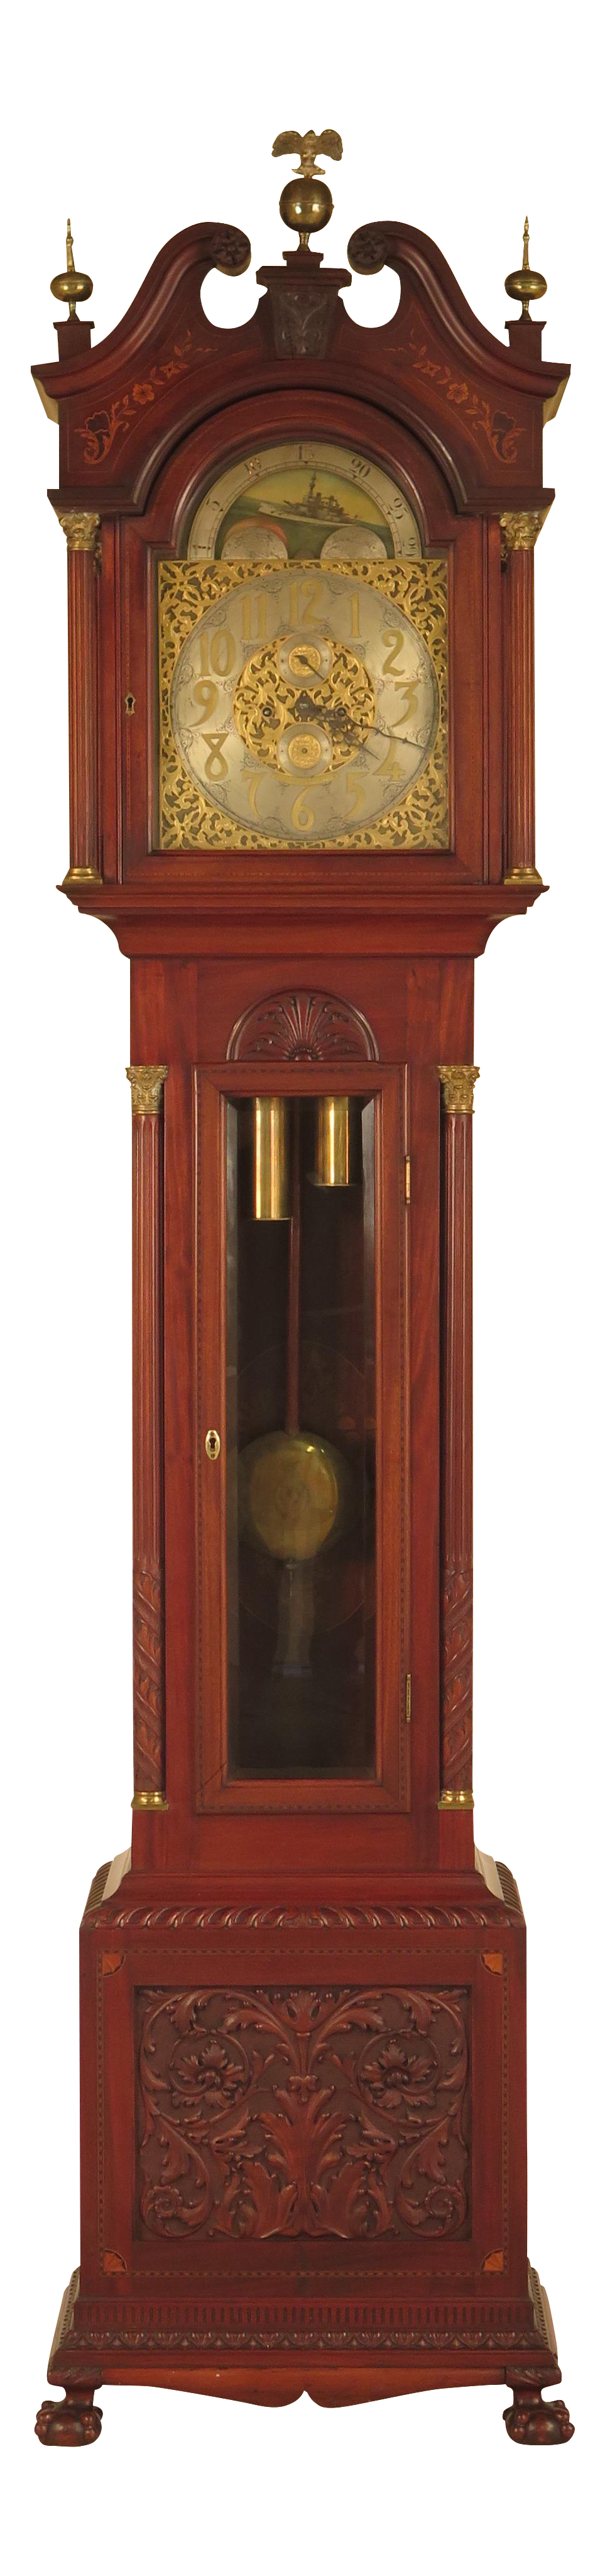 Grandfather clock png. Waltham antique carved inlaid